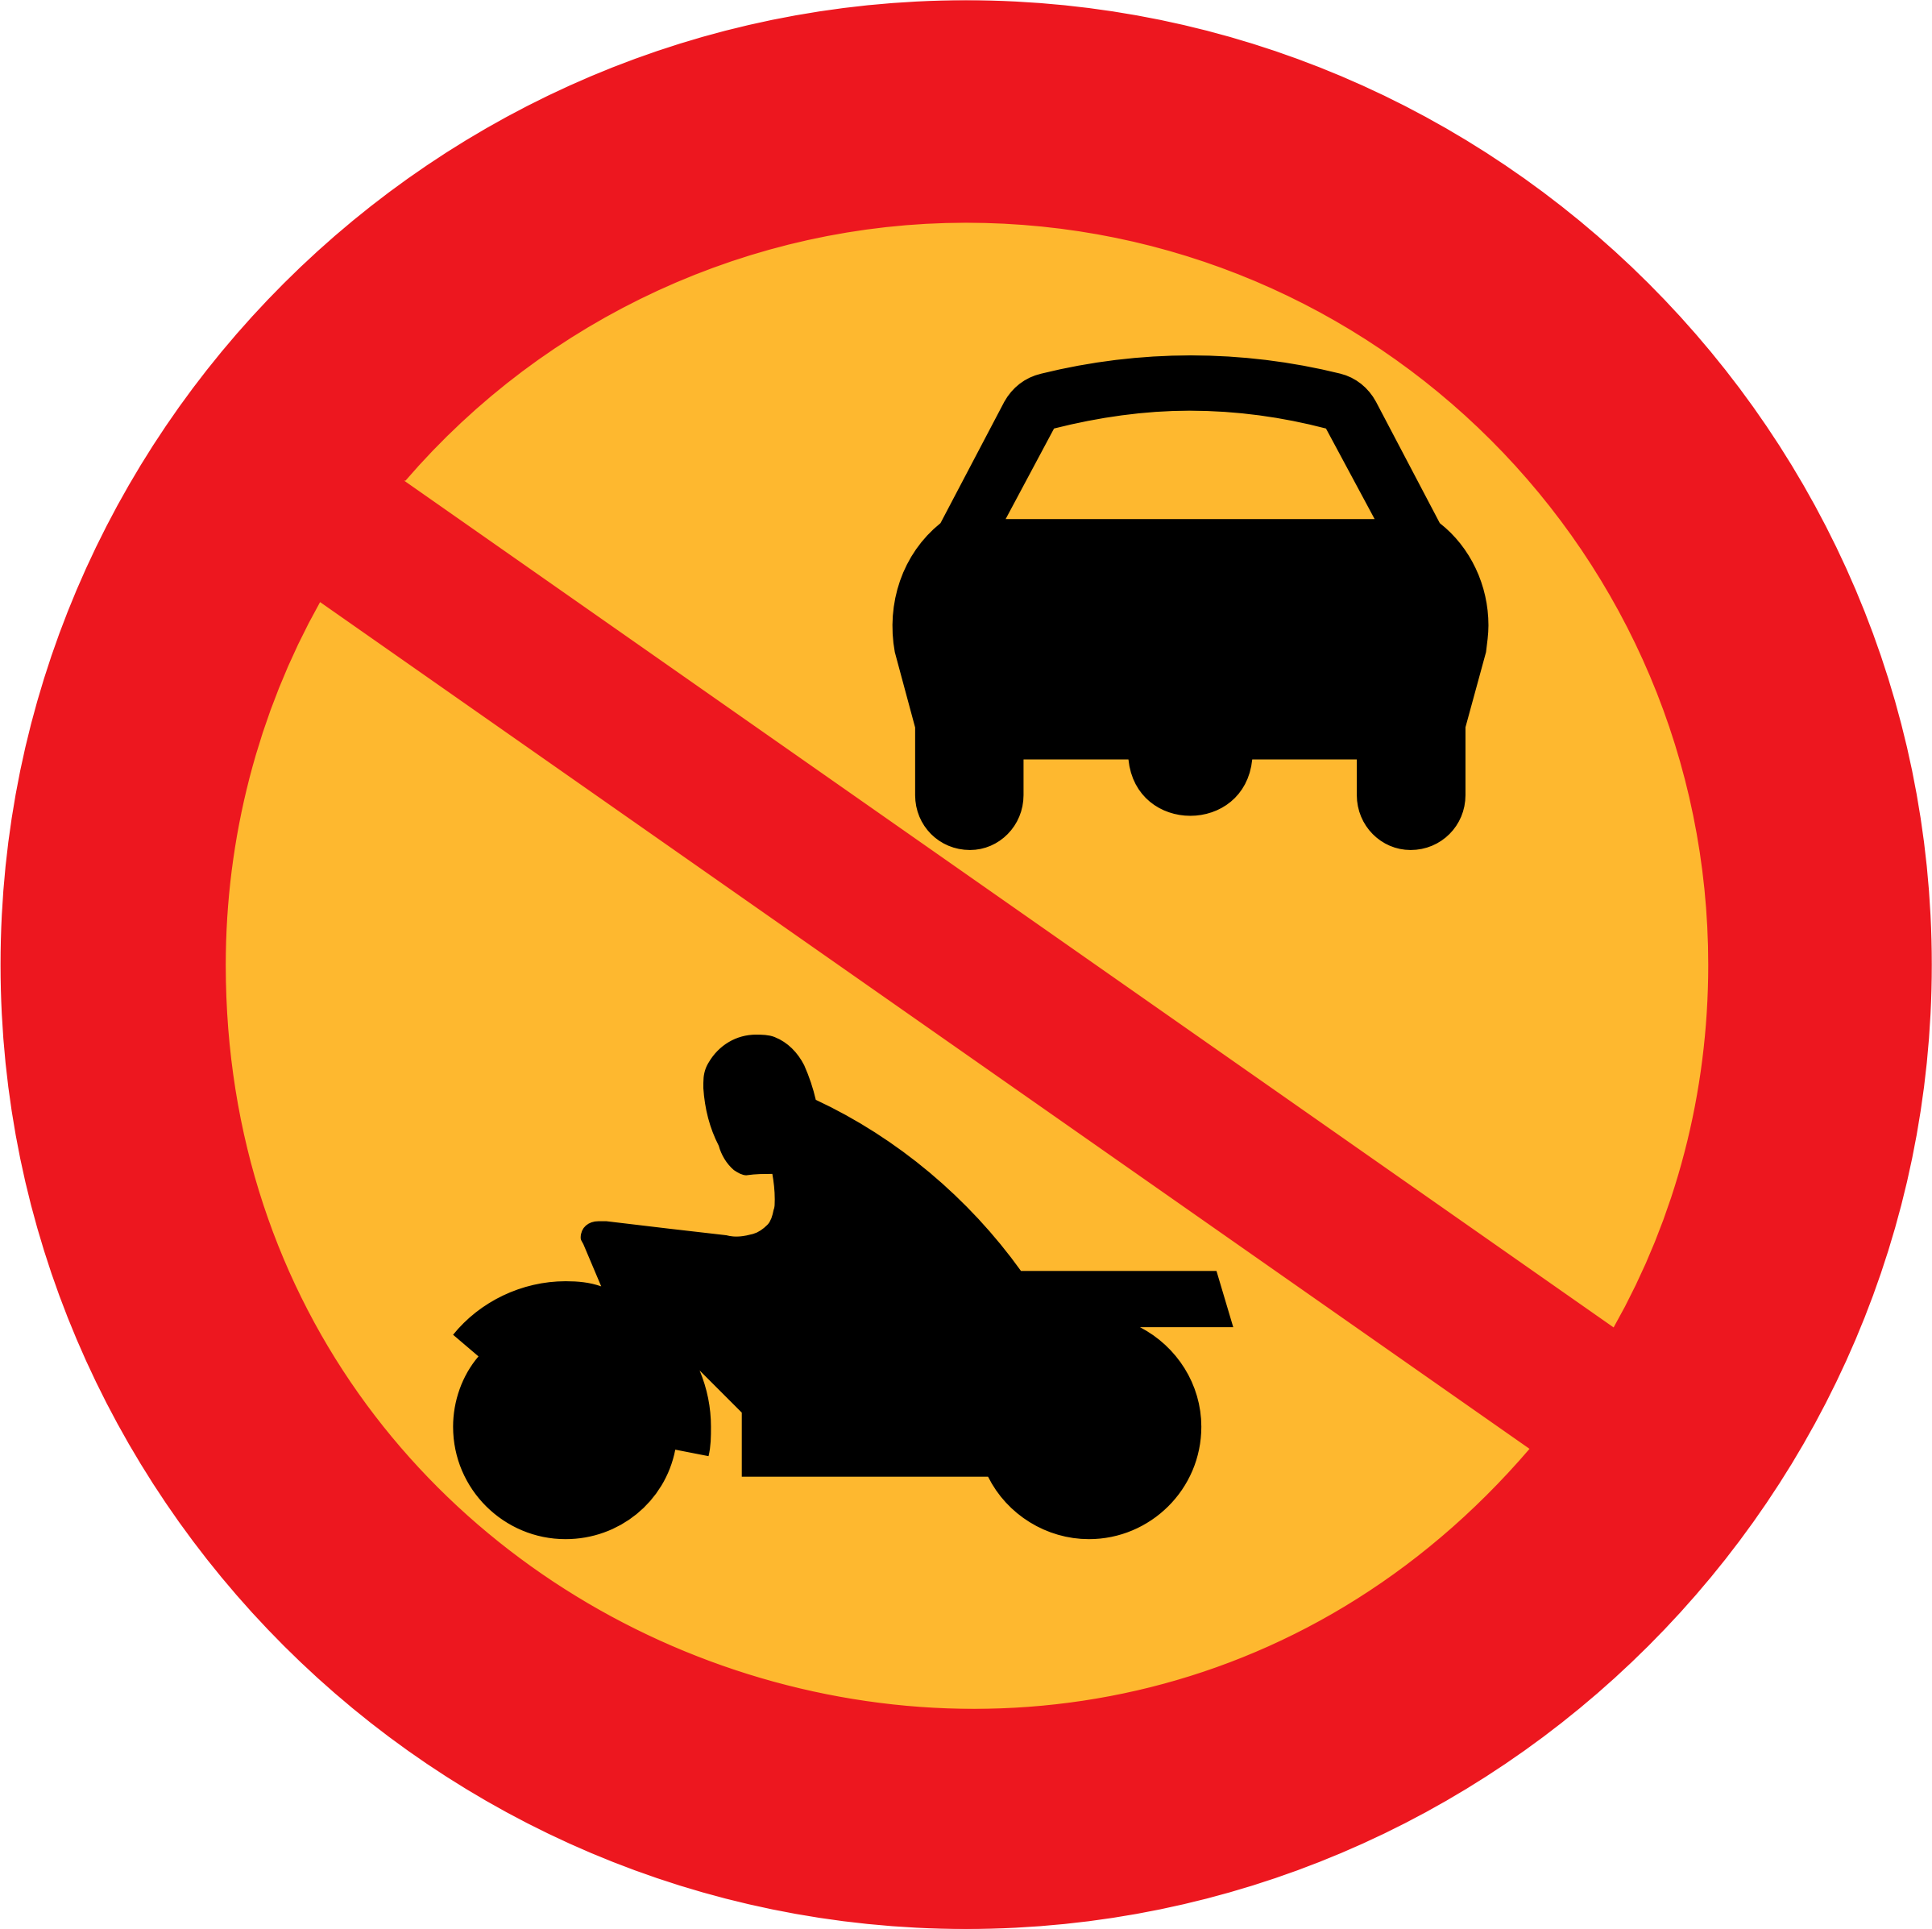 Car sign clipart jpg freeuse download Clipart - No Motorbikes or cars jpg freeuse download